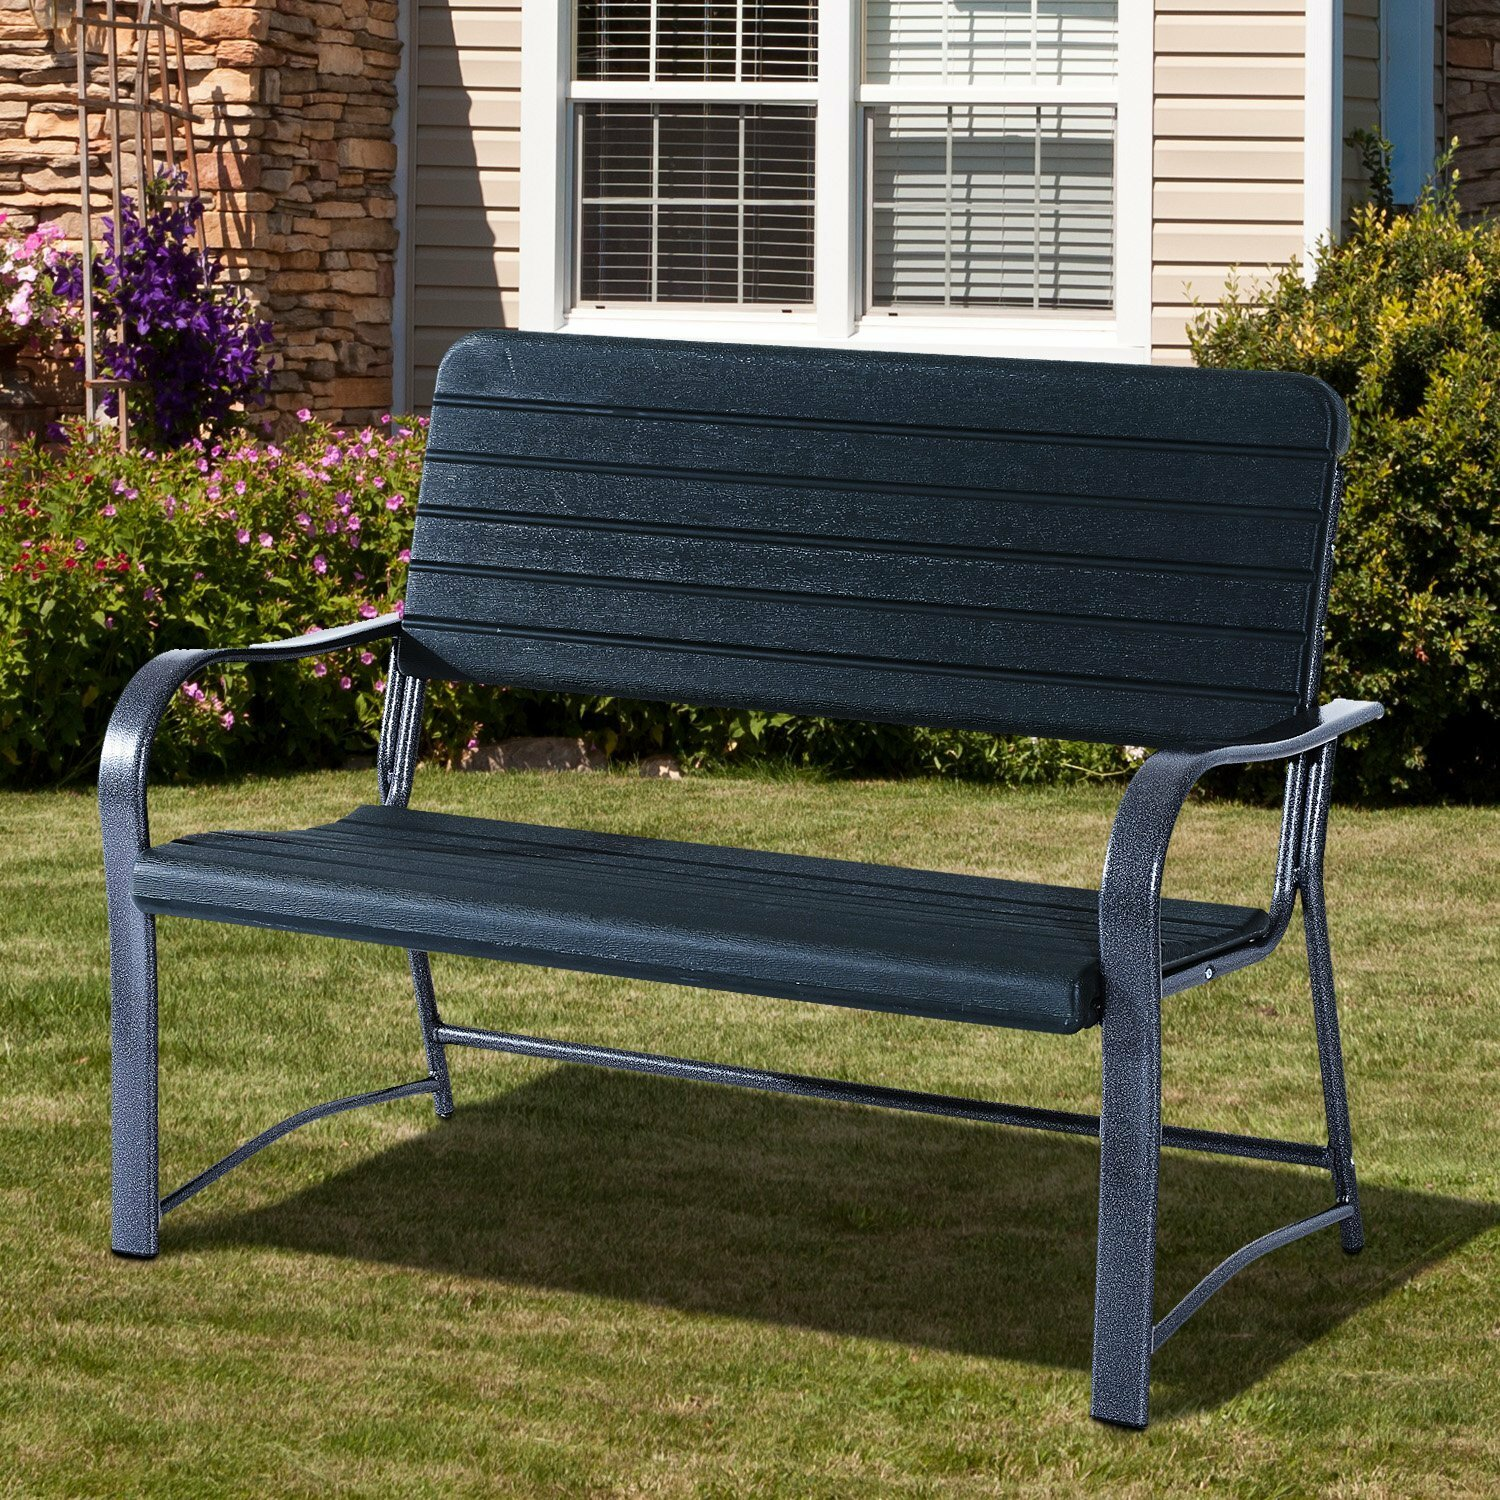 patio metal w l shop com pl steel outdoors treasures red lowes bench garden in outdoor x at benches furniture